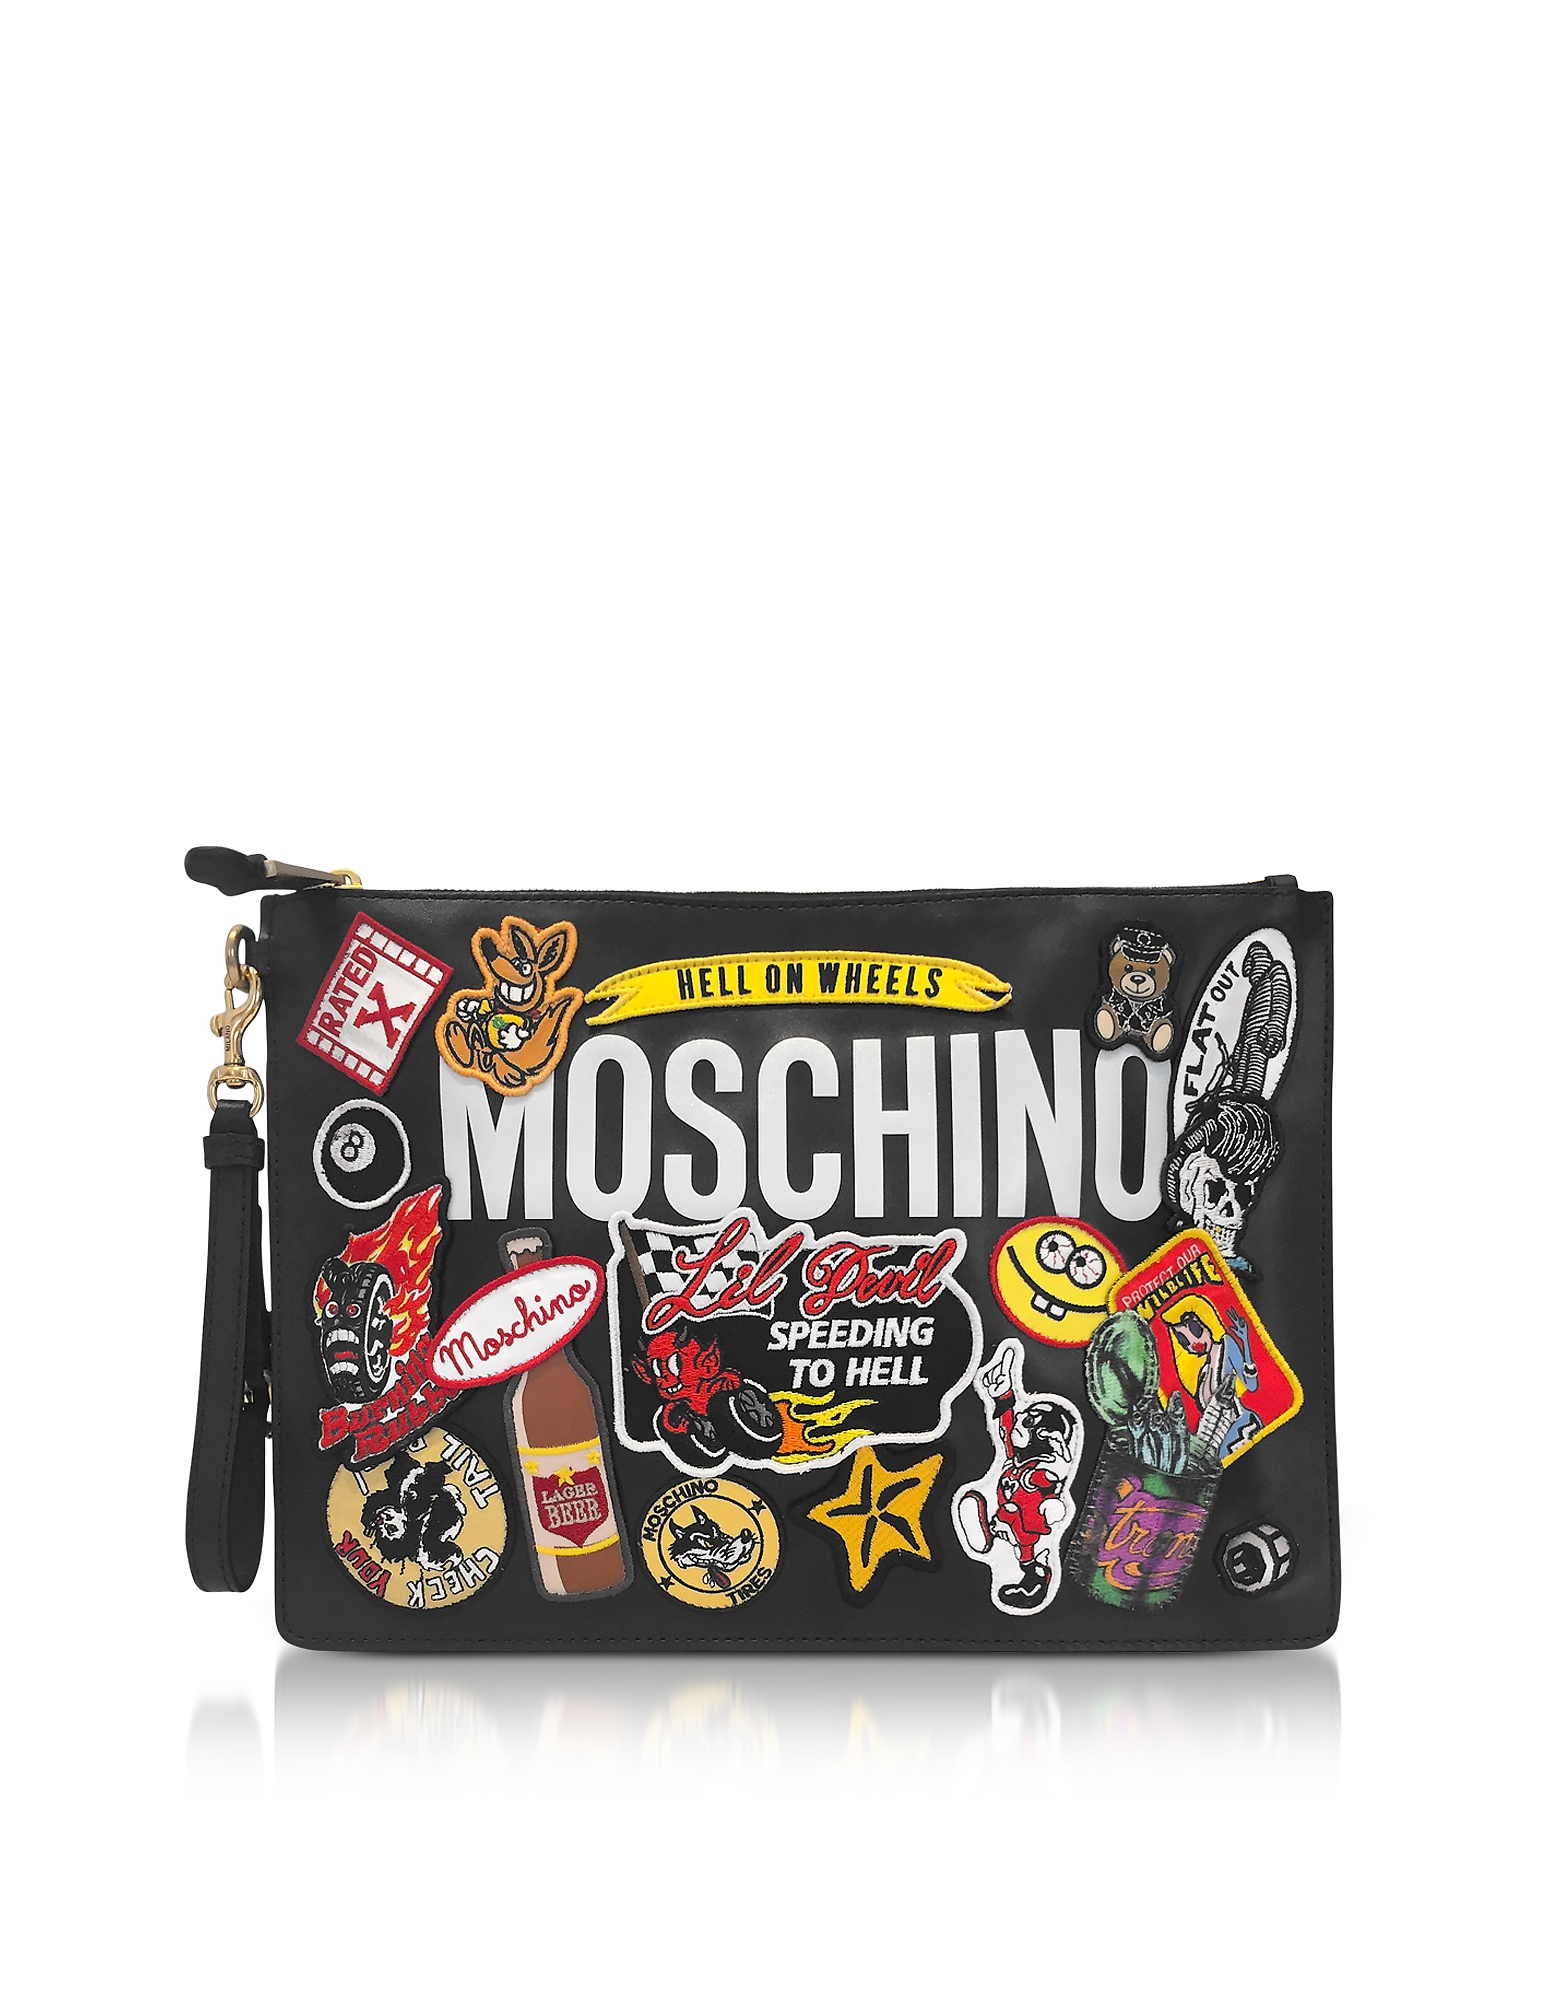 Moschino Black Leather Clutch w/Patches and Logo